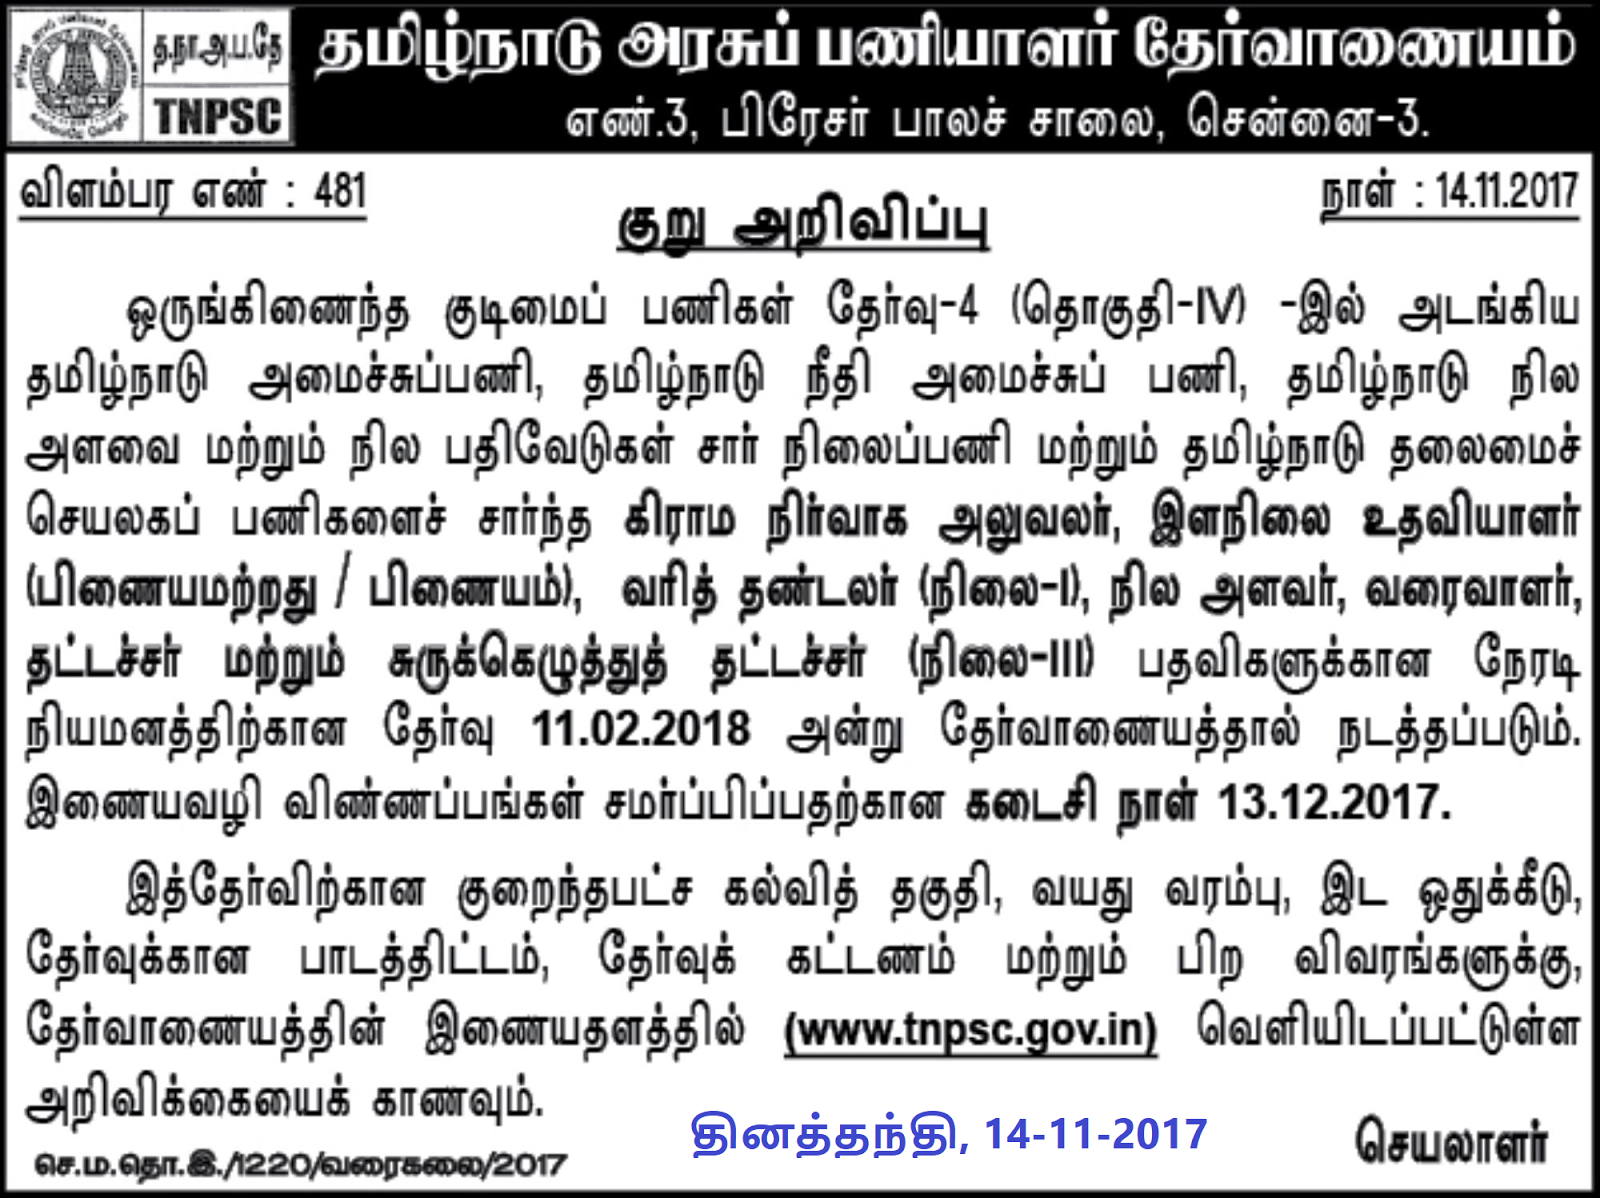 TNPSC VAO and Group 4 Combined Exam (CCSE-IV) Notification